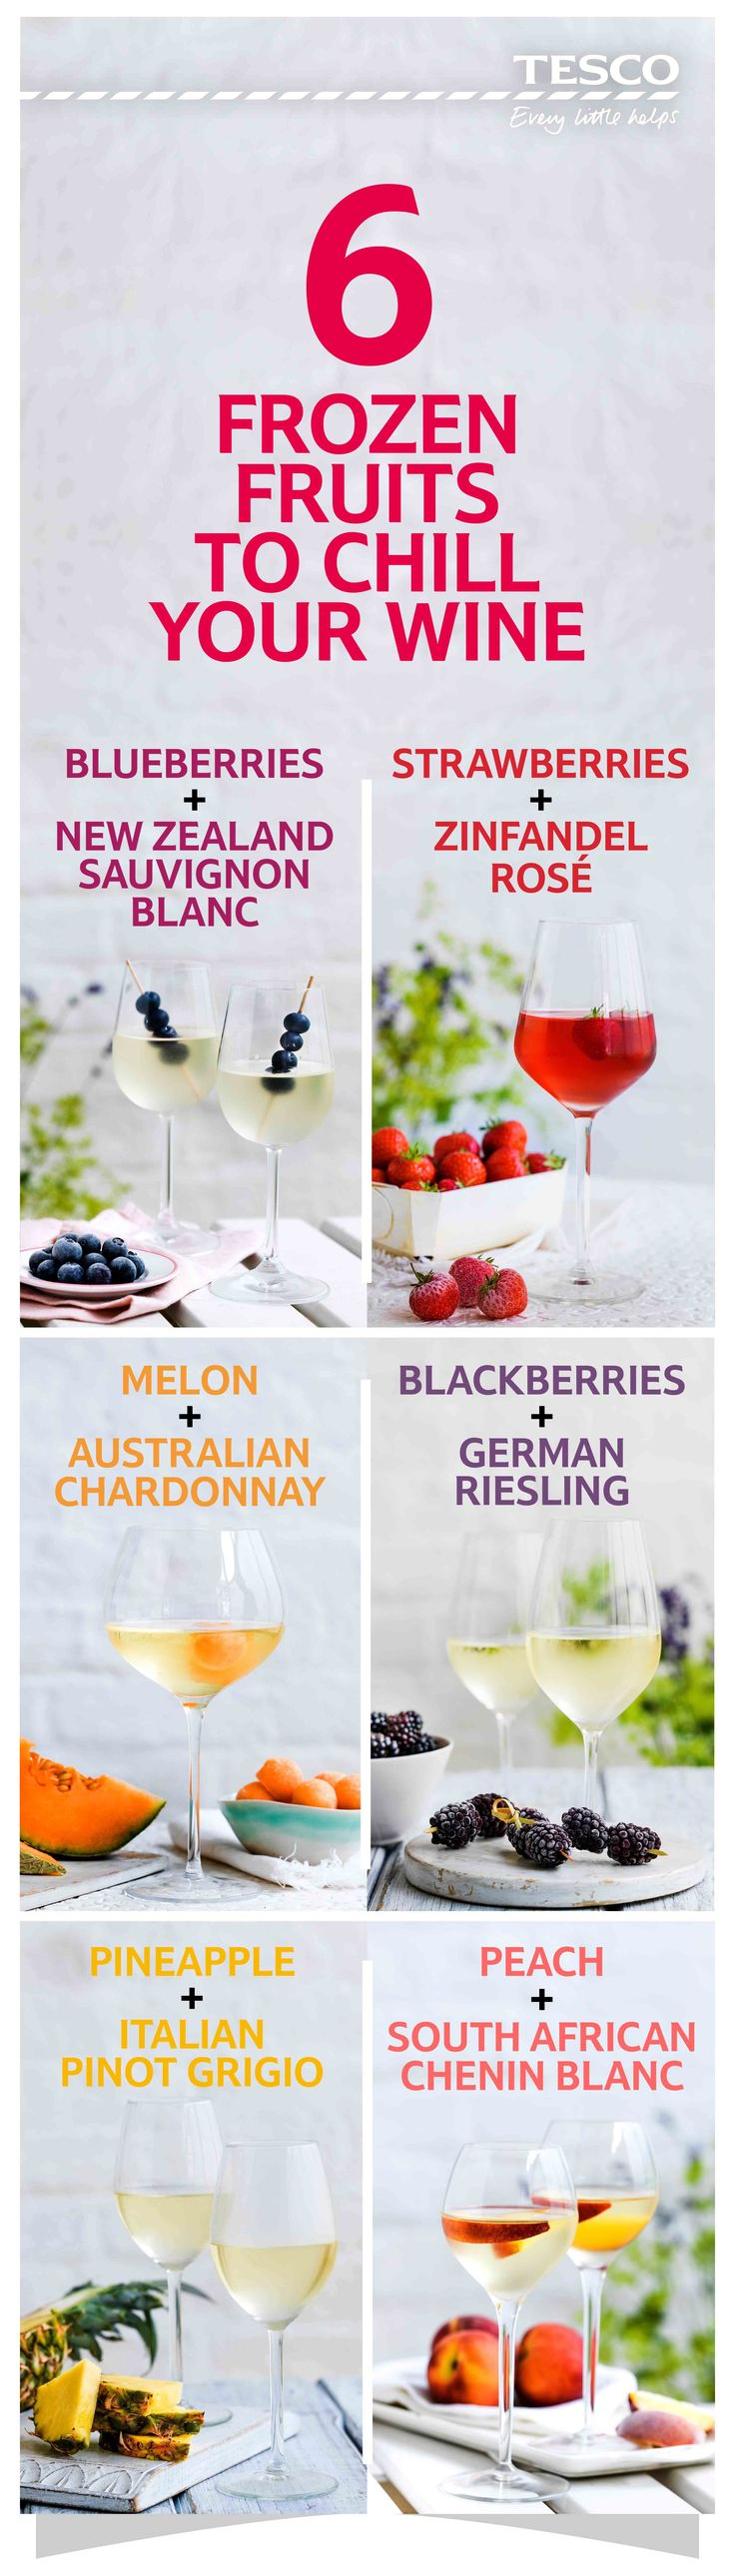 Forget ice, keep your wine perfectly chilled using frozen fruit. It doesn't melt into your vino but instead imparts a mild flavour as it thaws. Here's our guide to the perfect frozen fruit and wine pairings. Explore our range of Tesco wines at tes.co/TescoWine | Tesco